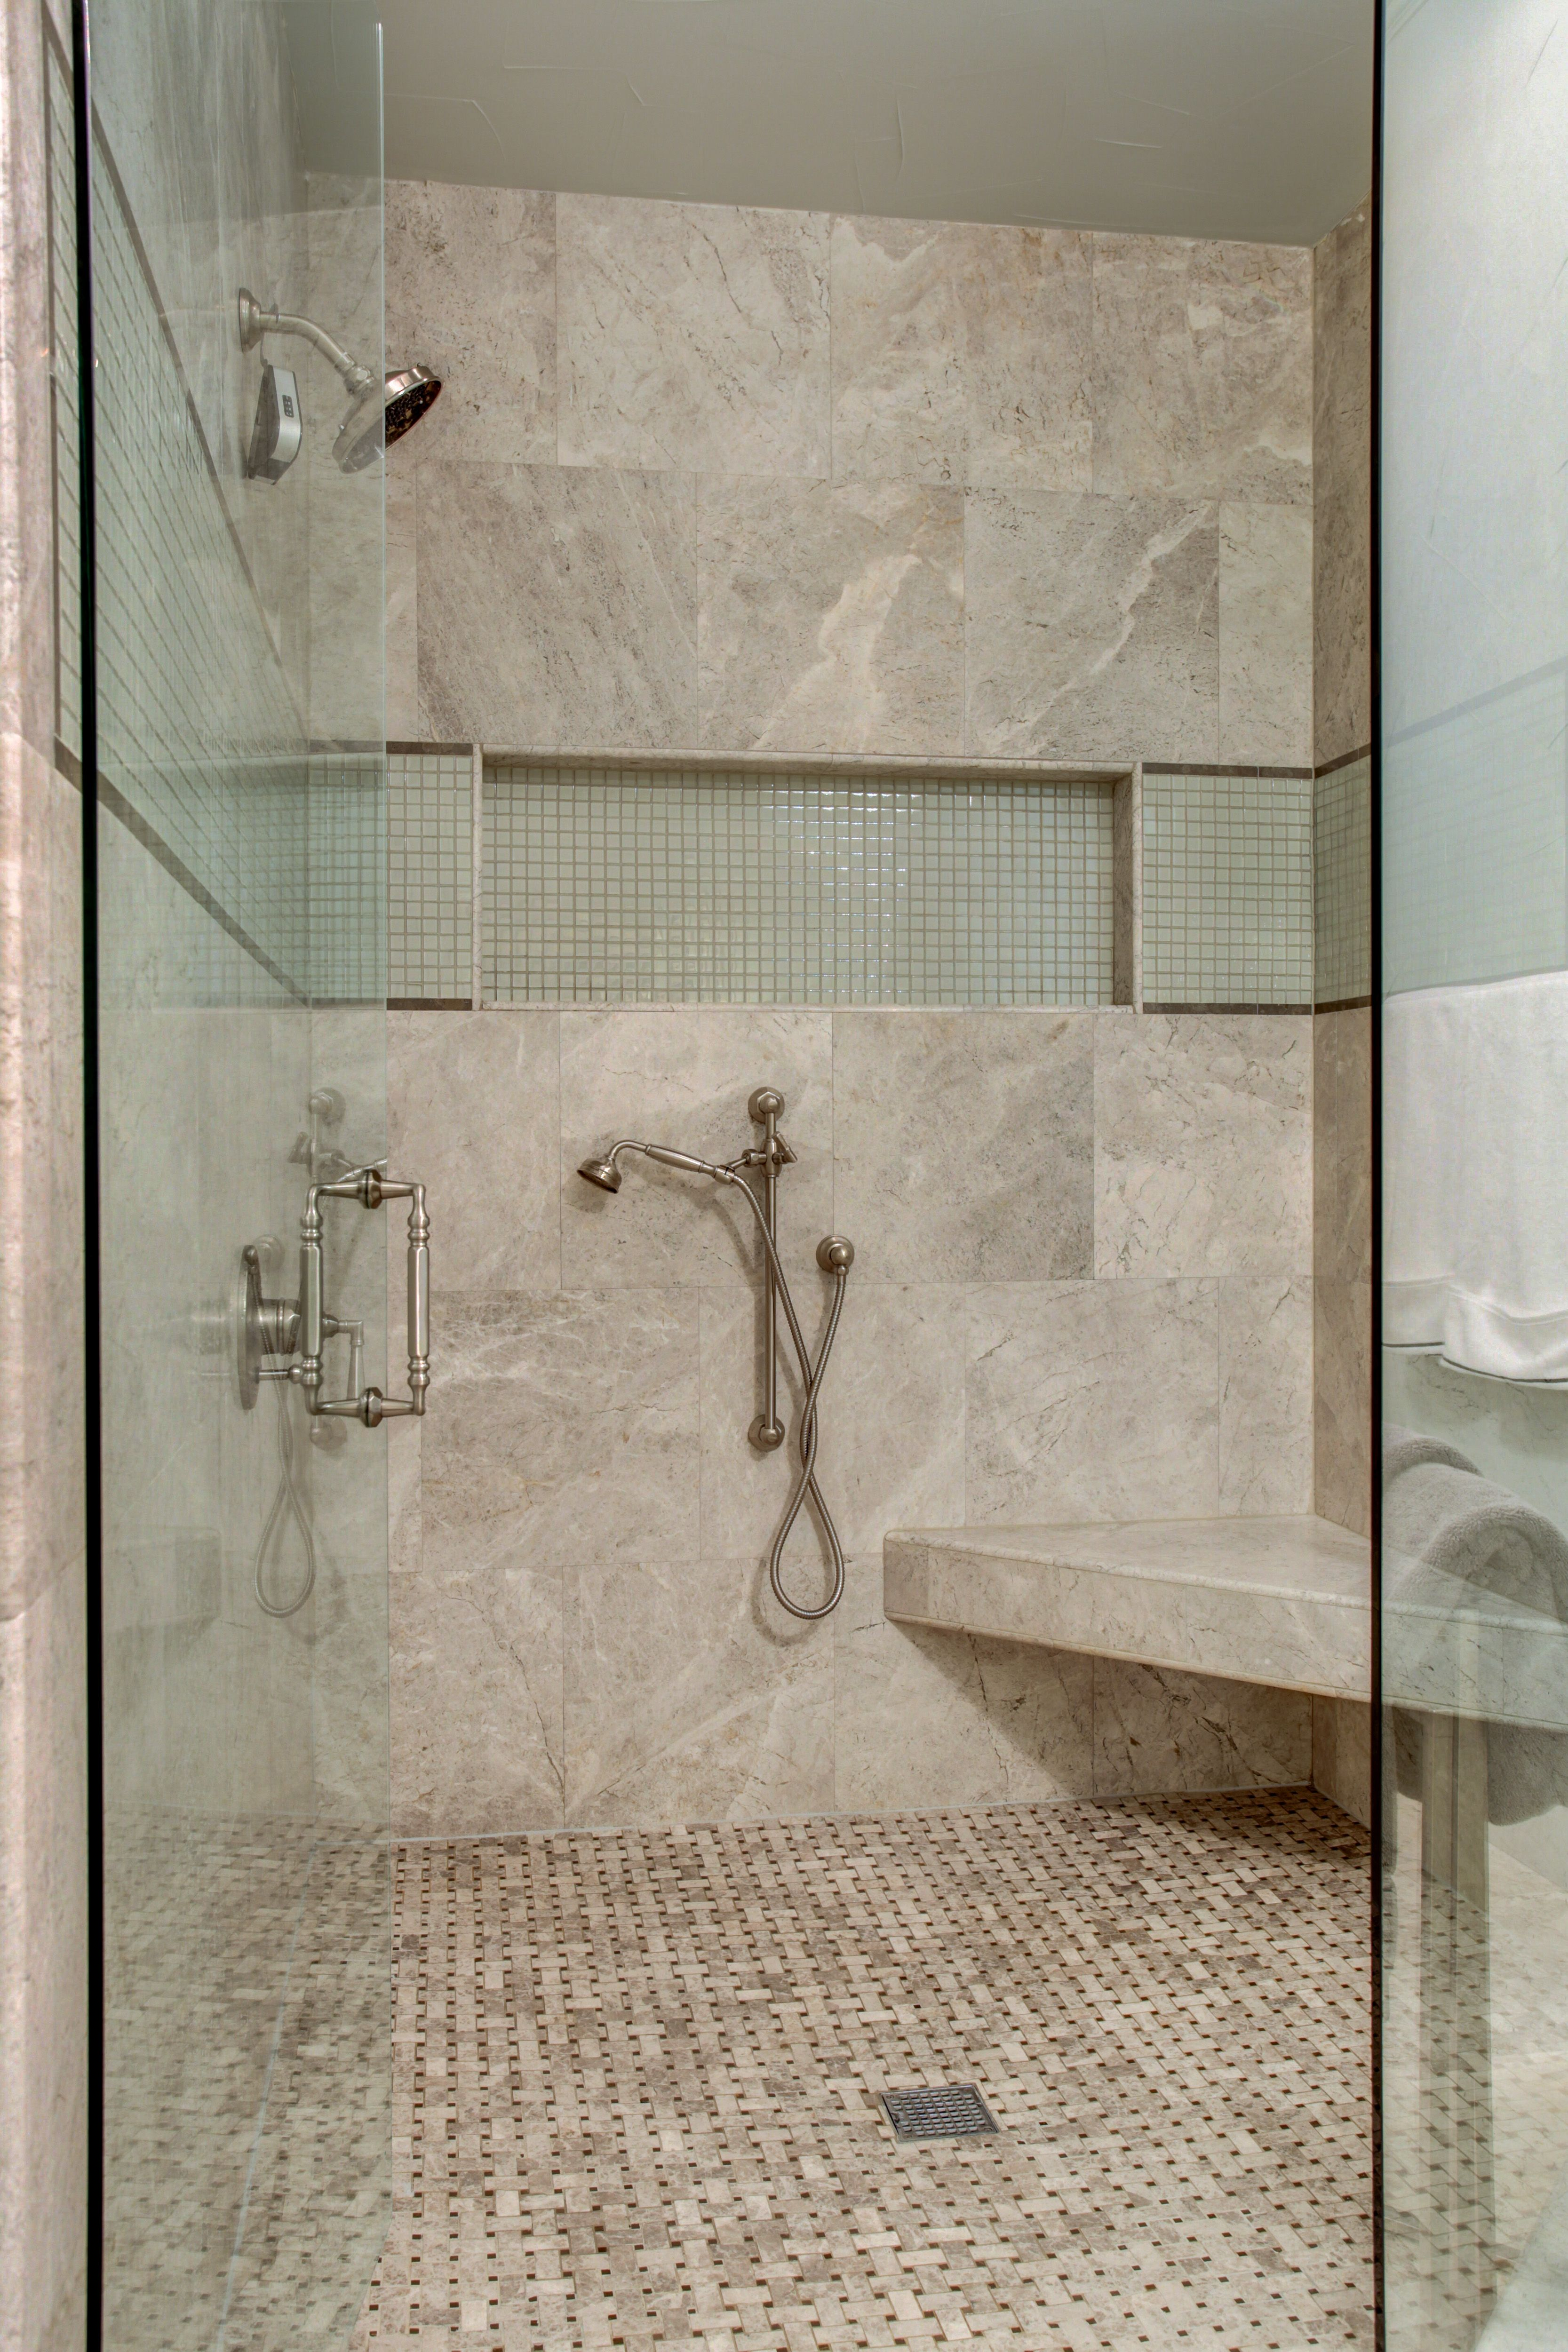 Daltile arctic gray hones tile 9x18 shower wall basketweave daltile arctic gray hones tile 9x18 shower wall basketweave floor renaissance tile tomei 1x1 glass insert with montevido liner rohl palladian shower dailygadgetfo Images